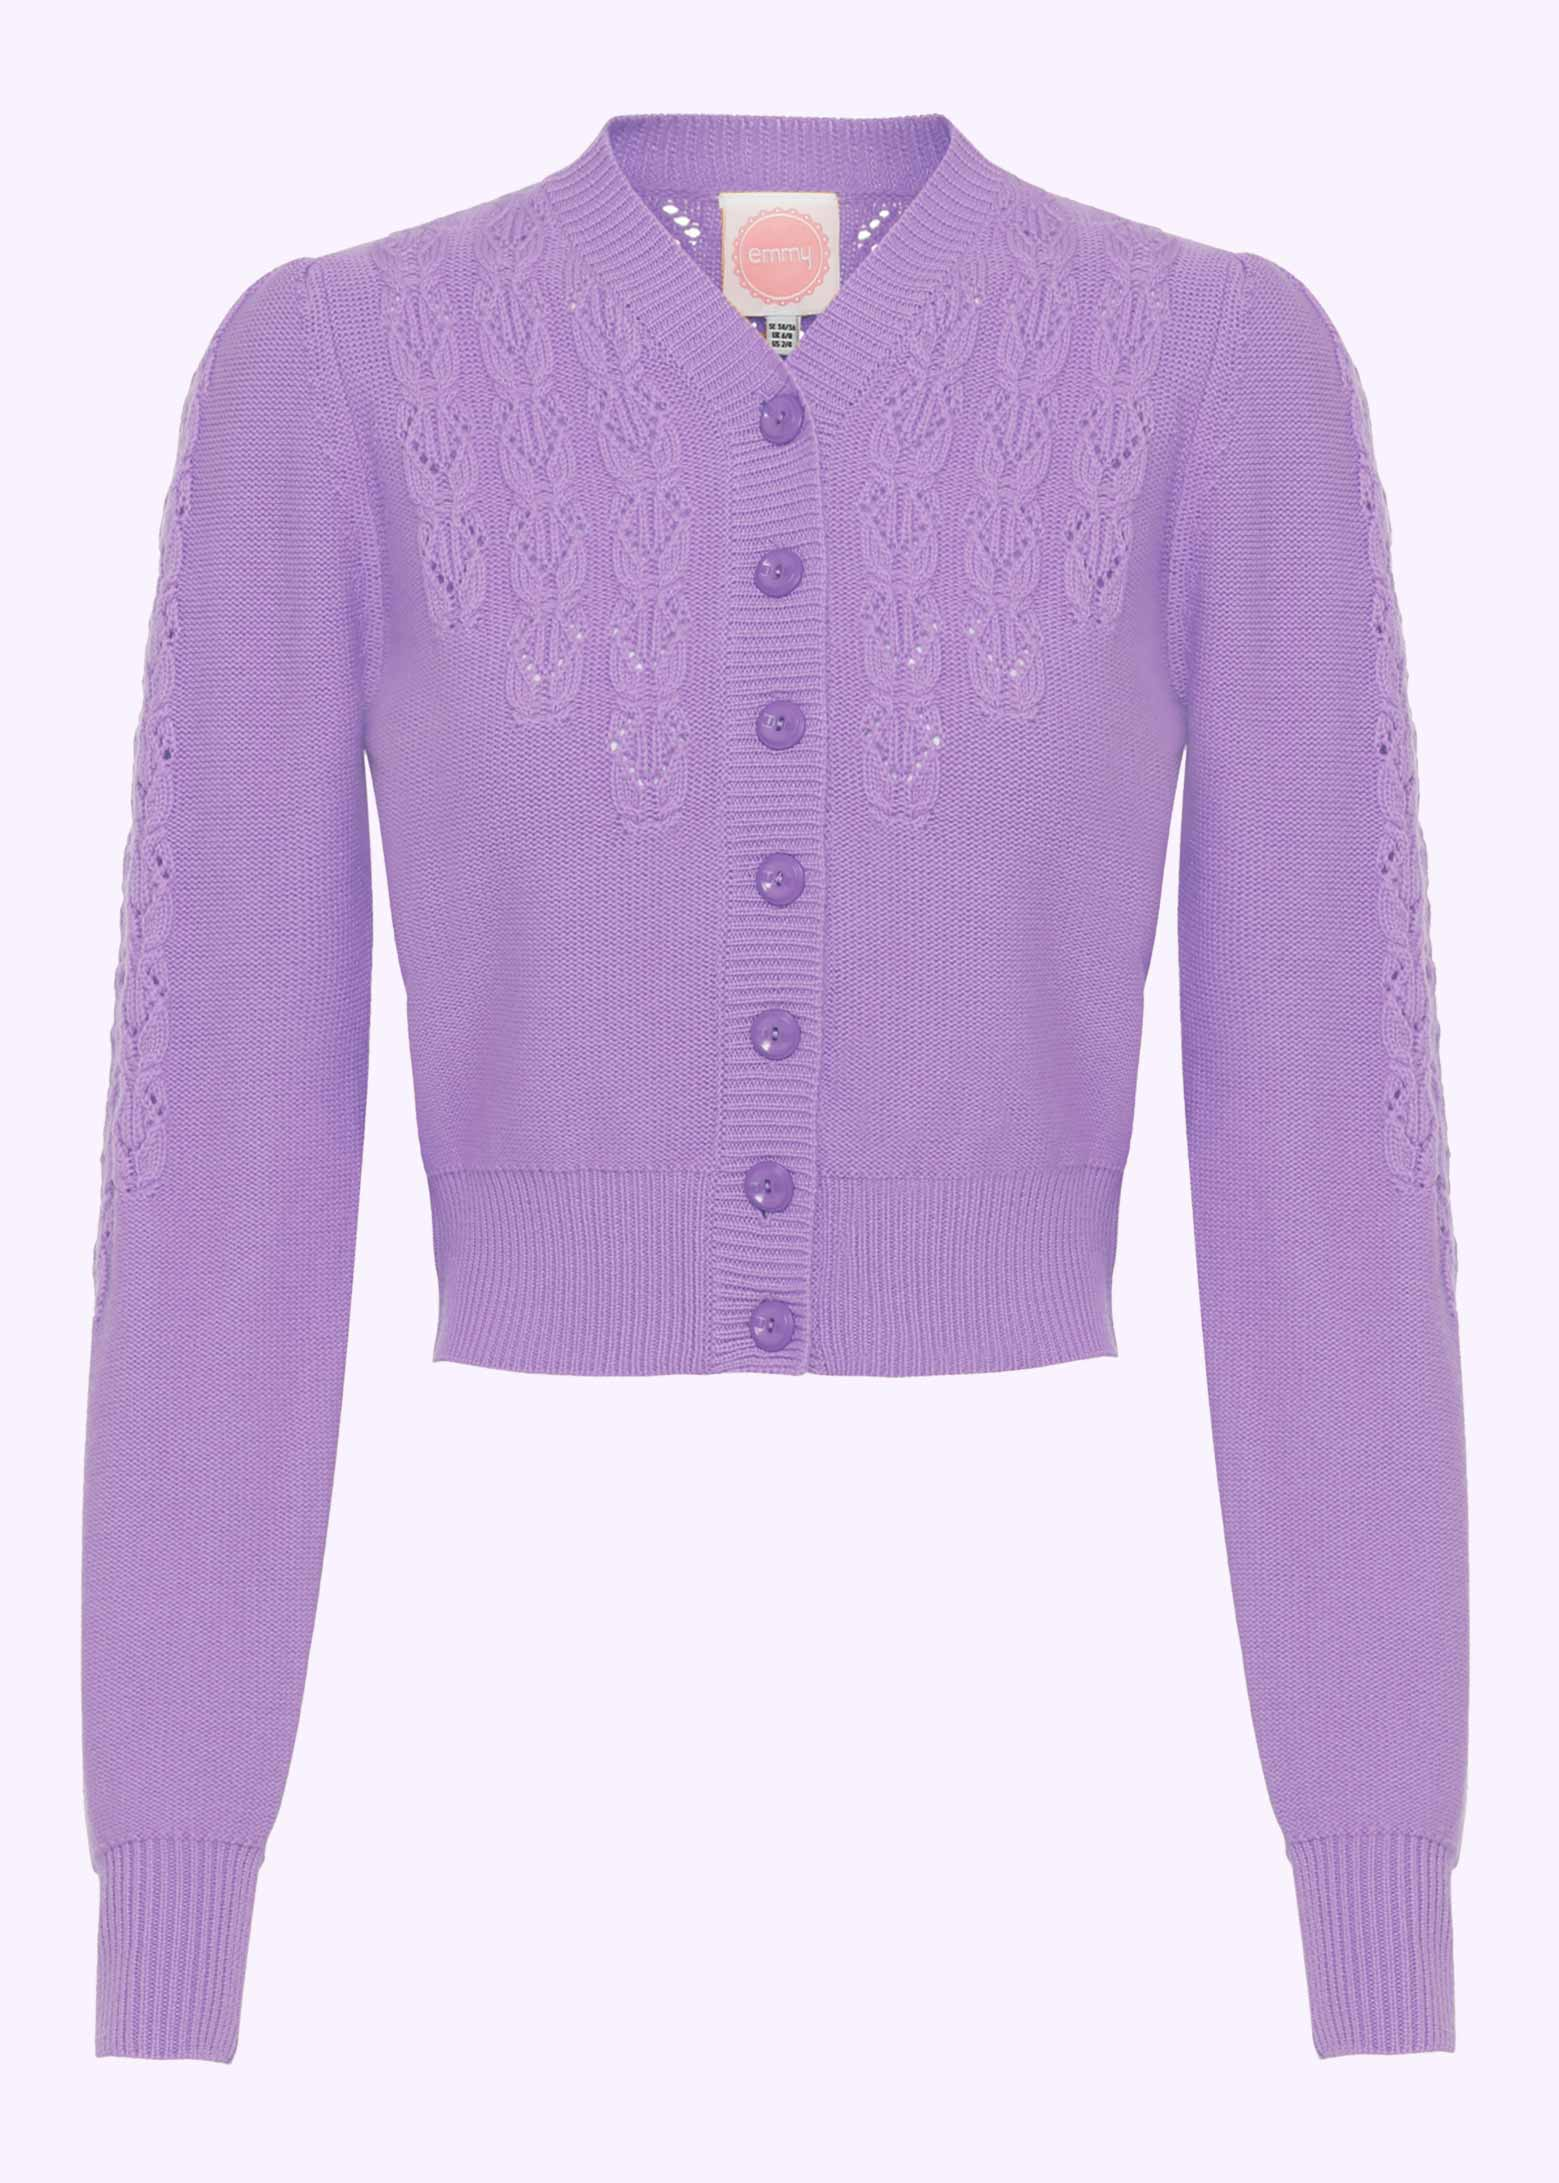 Peggy Sue cardigan in lavender from Emmy Design